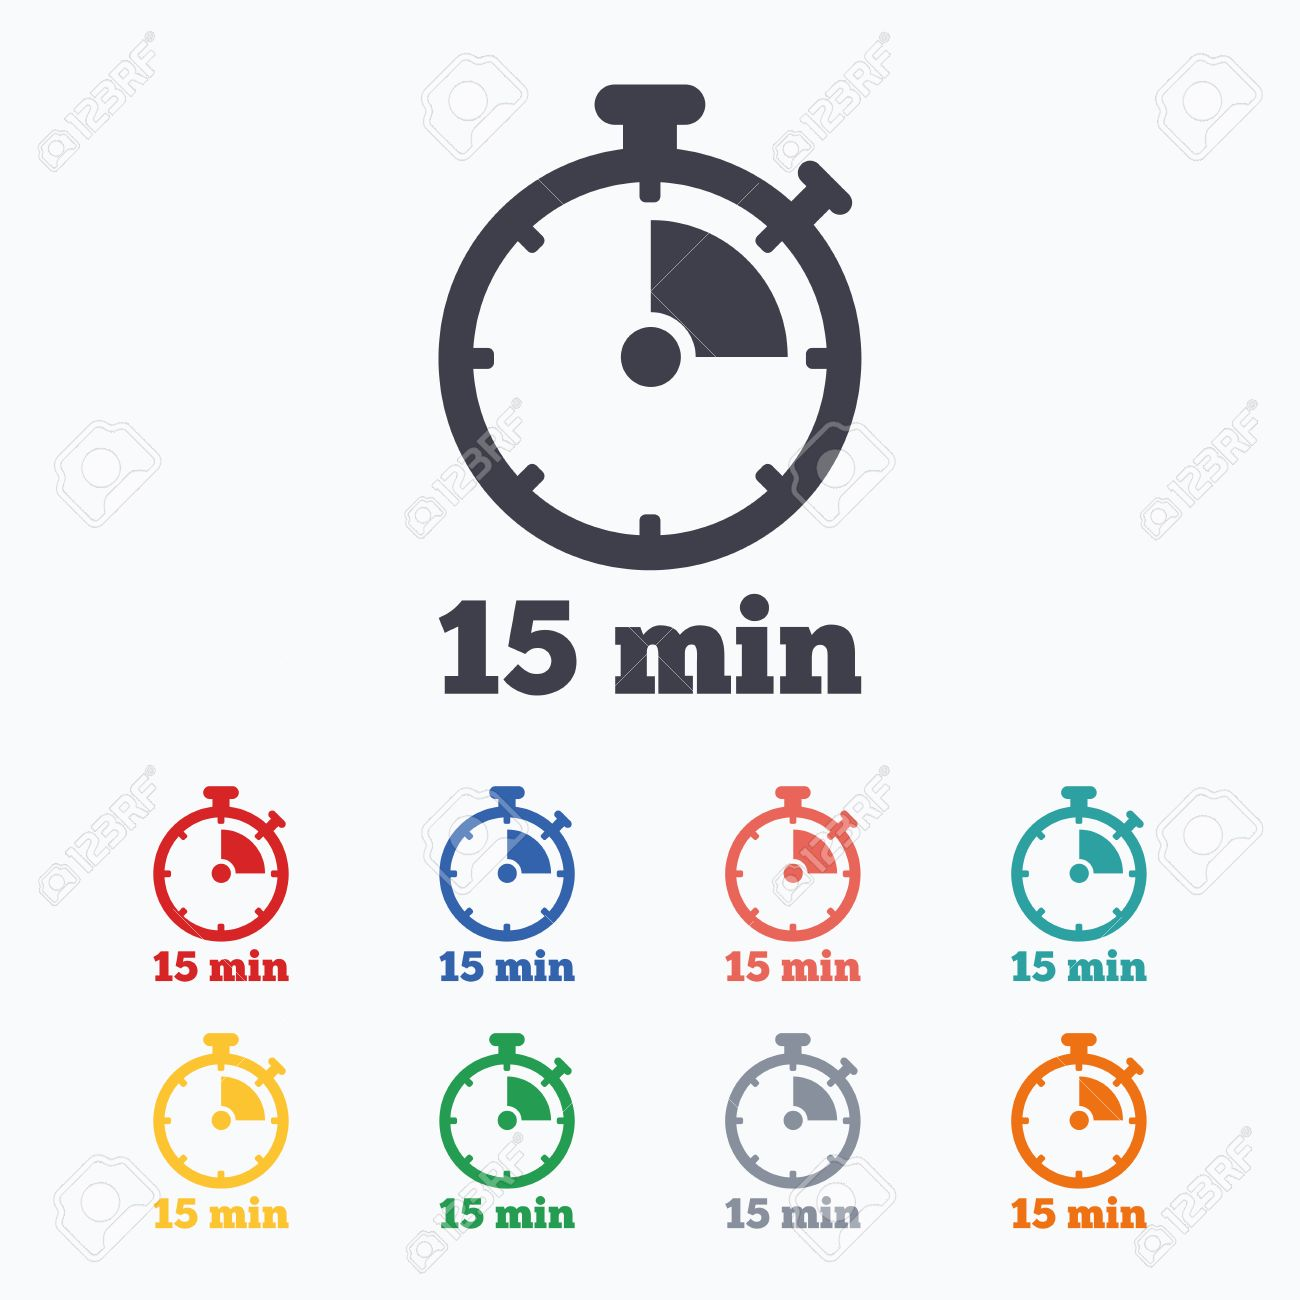 Timer sign icon  15 minutes stopwatch symbol  Colored flat icons